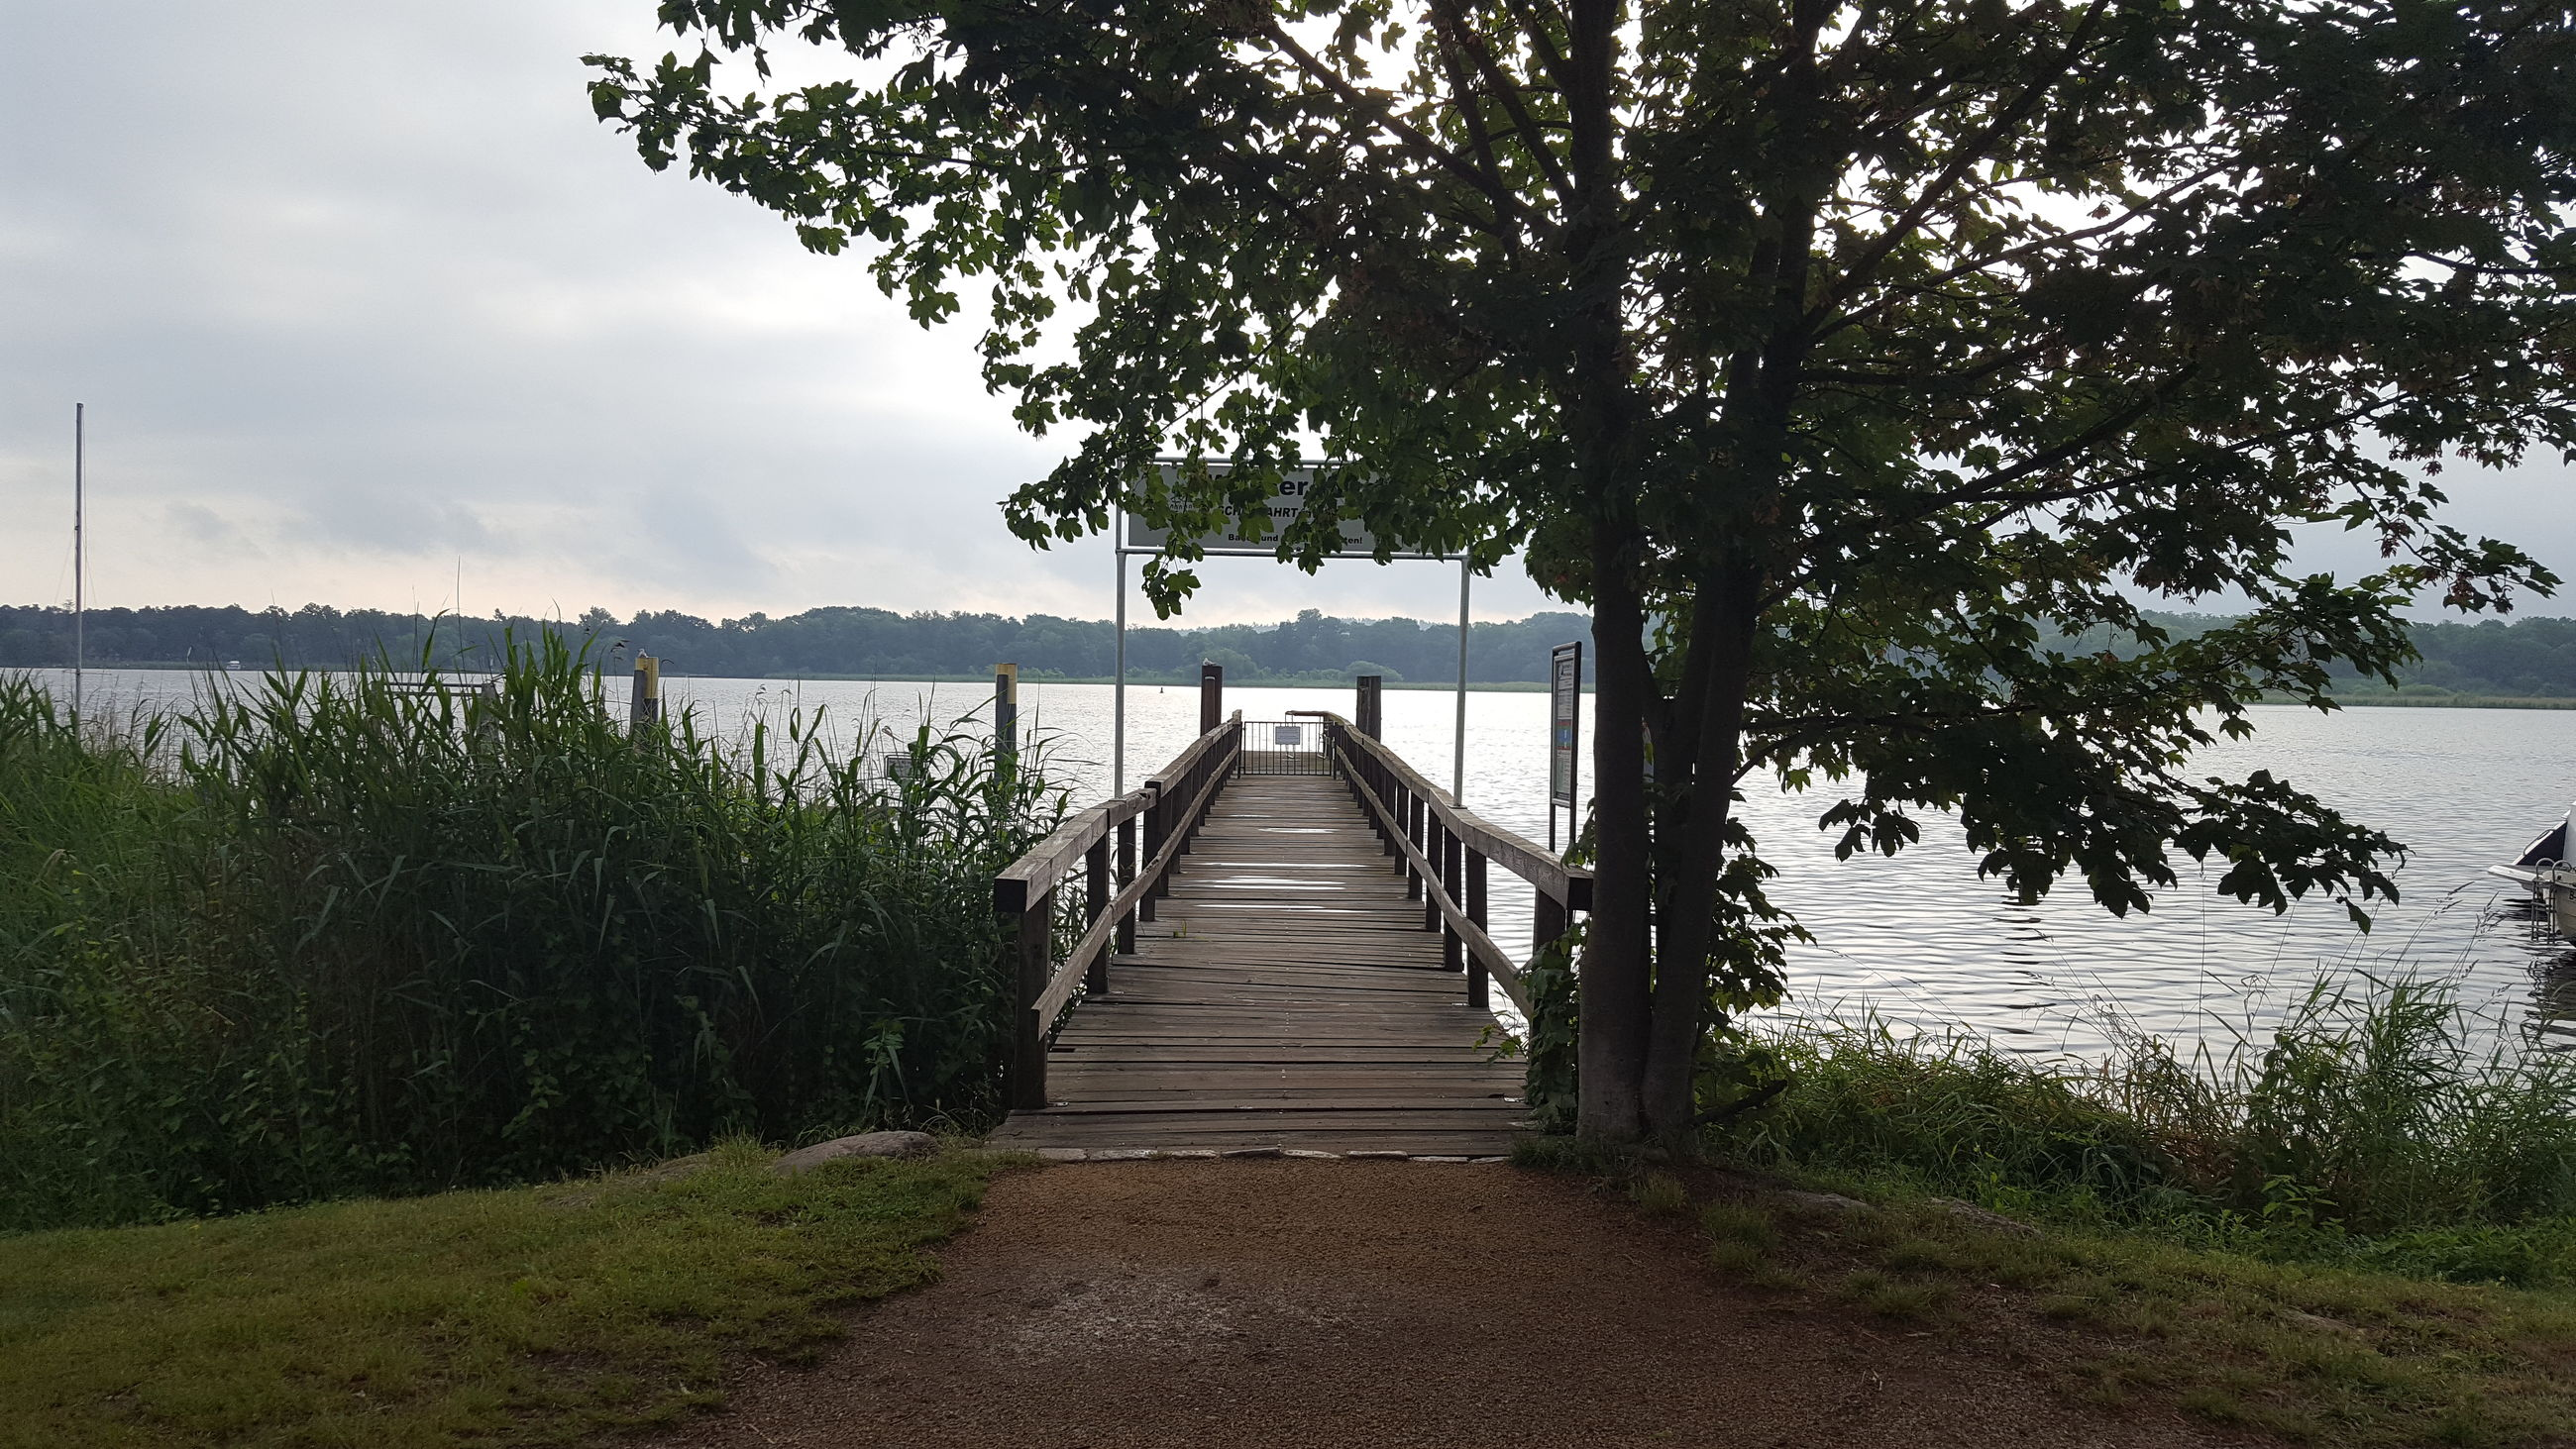 EMPTY WOODEN BENCH BY LAKE AGAINST TREES